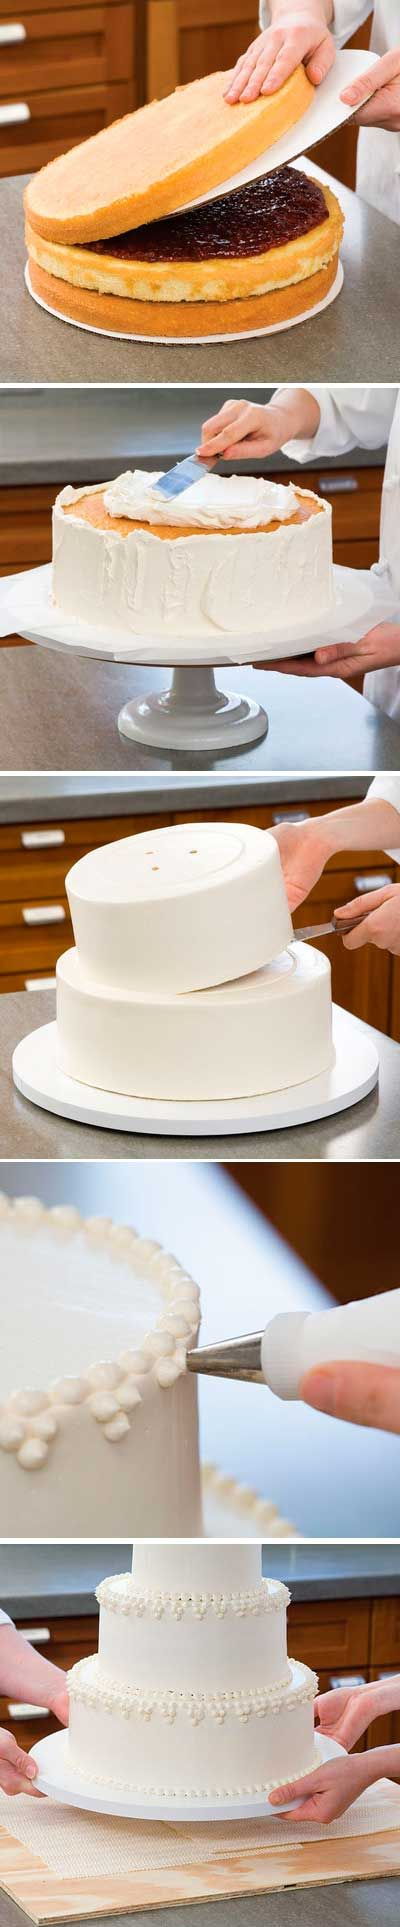 How to assemble, decorate, transport and disassemble a wedding cake. Good for any multi-tier cake assembly. -- @letciapetrola Se eu soubesse que era tão fácil...